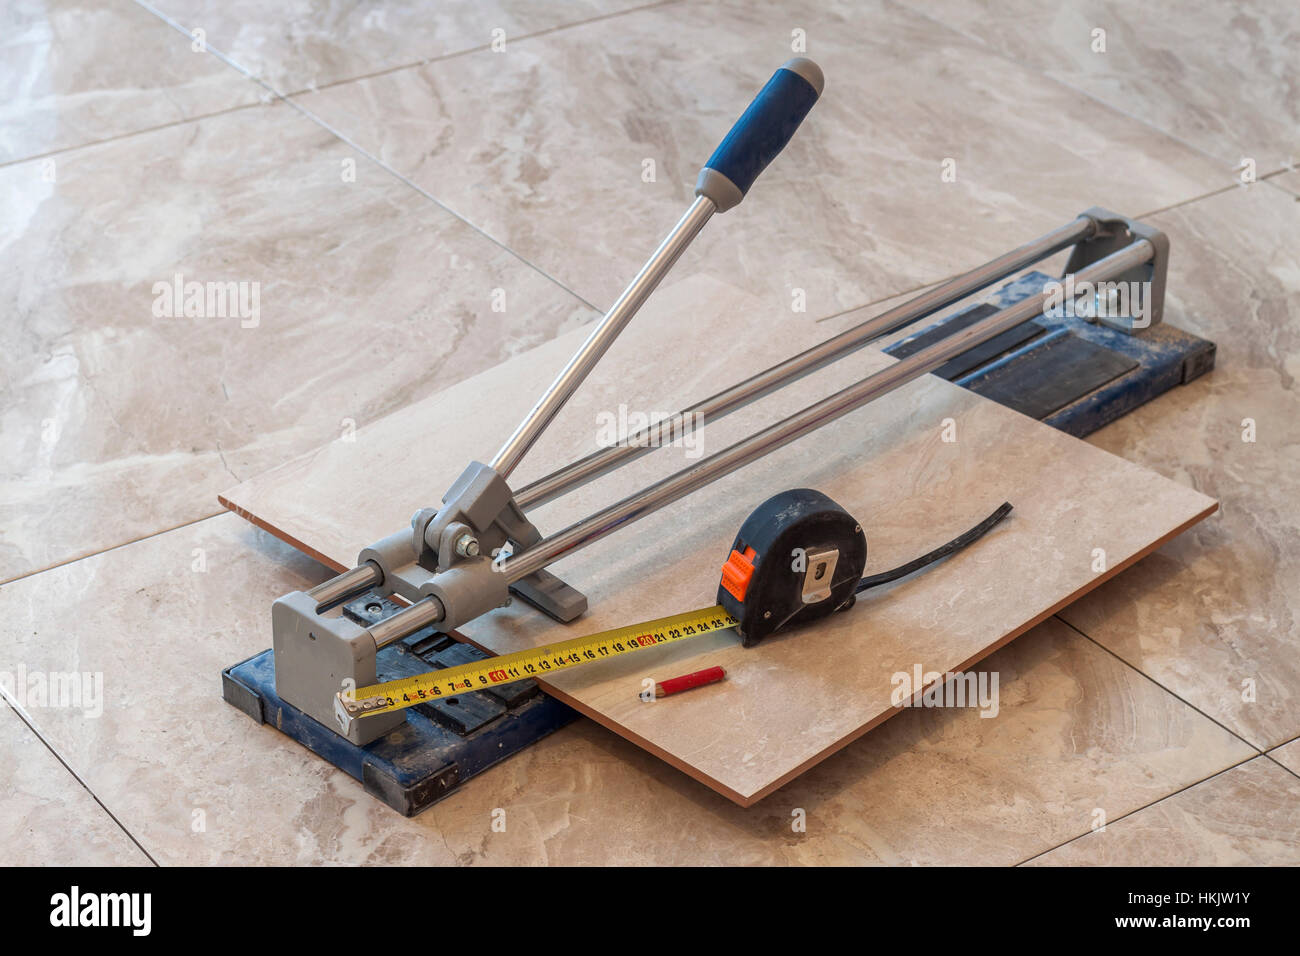 Ceramic tiles and tools for tiler floor tiles installation home ceramic tiles and tools for tiler floor tiles installation home improvement renovation dailygadgetfo Image collections